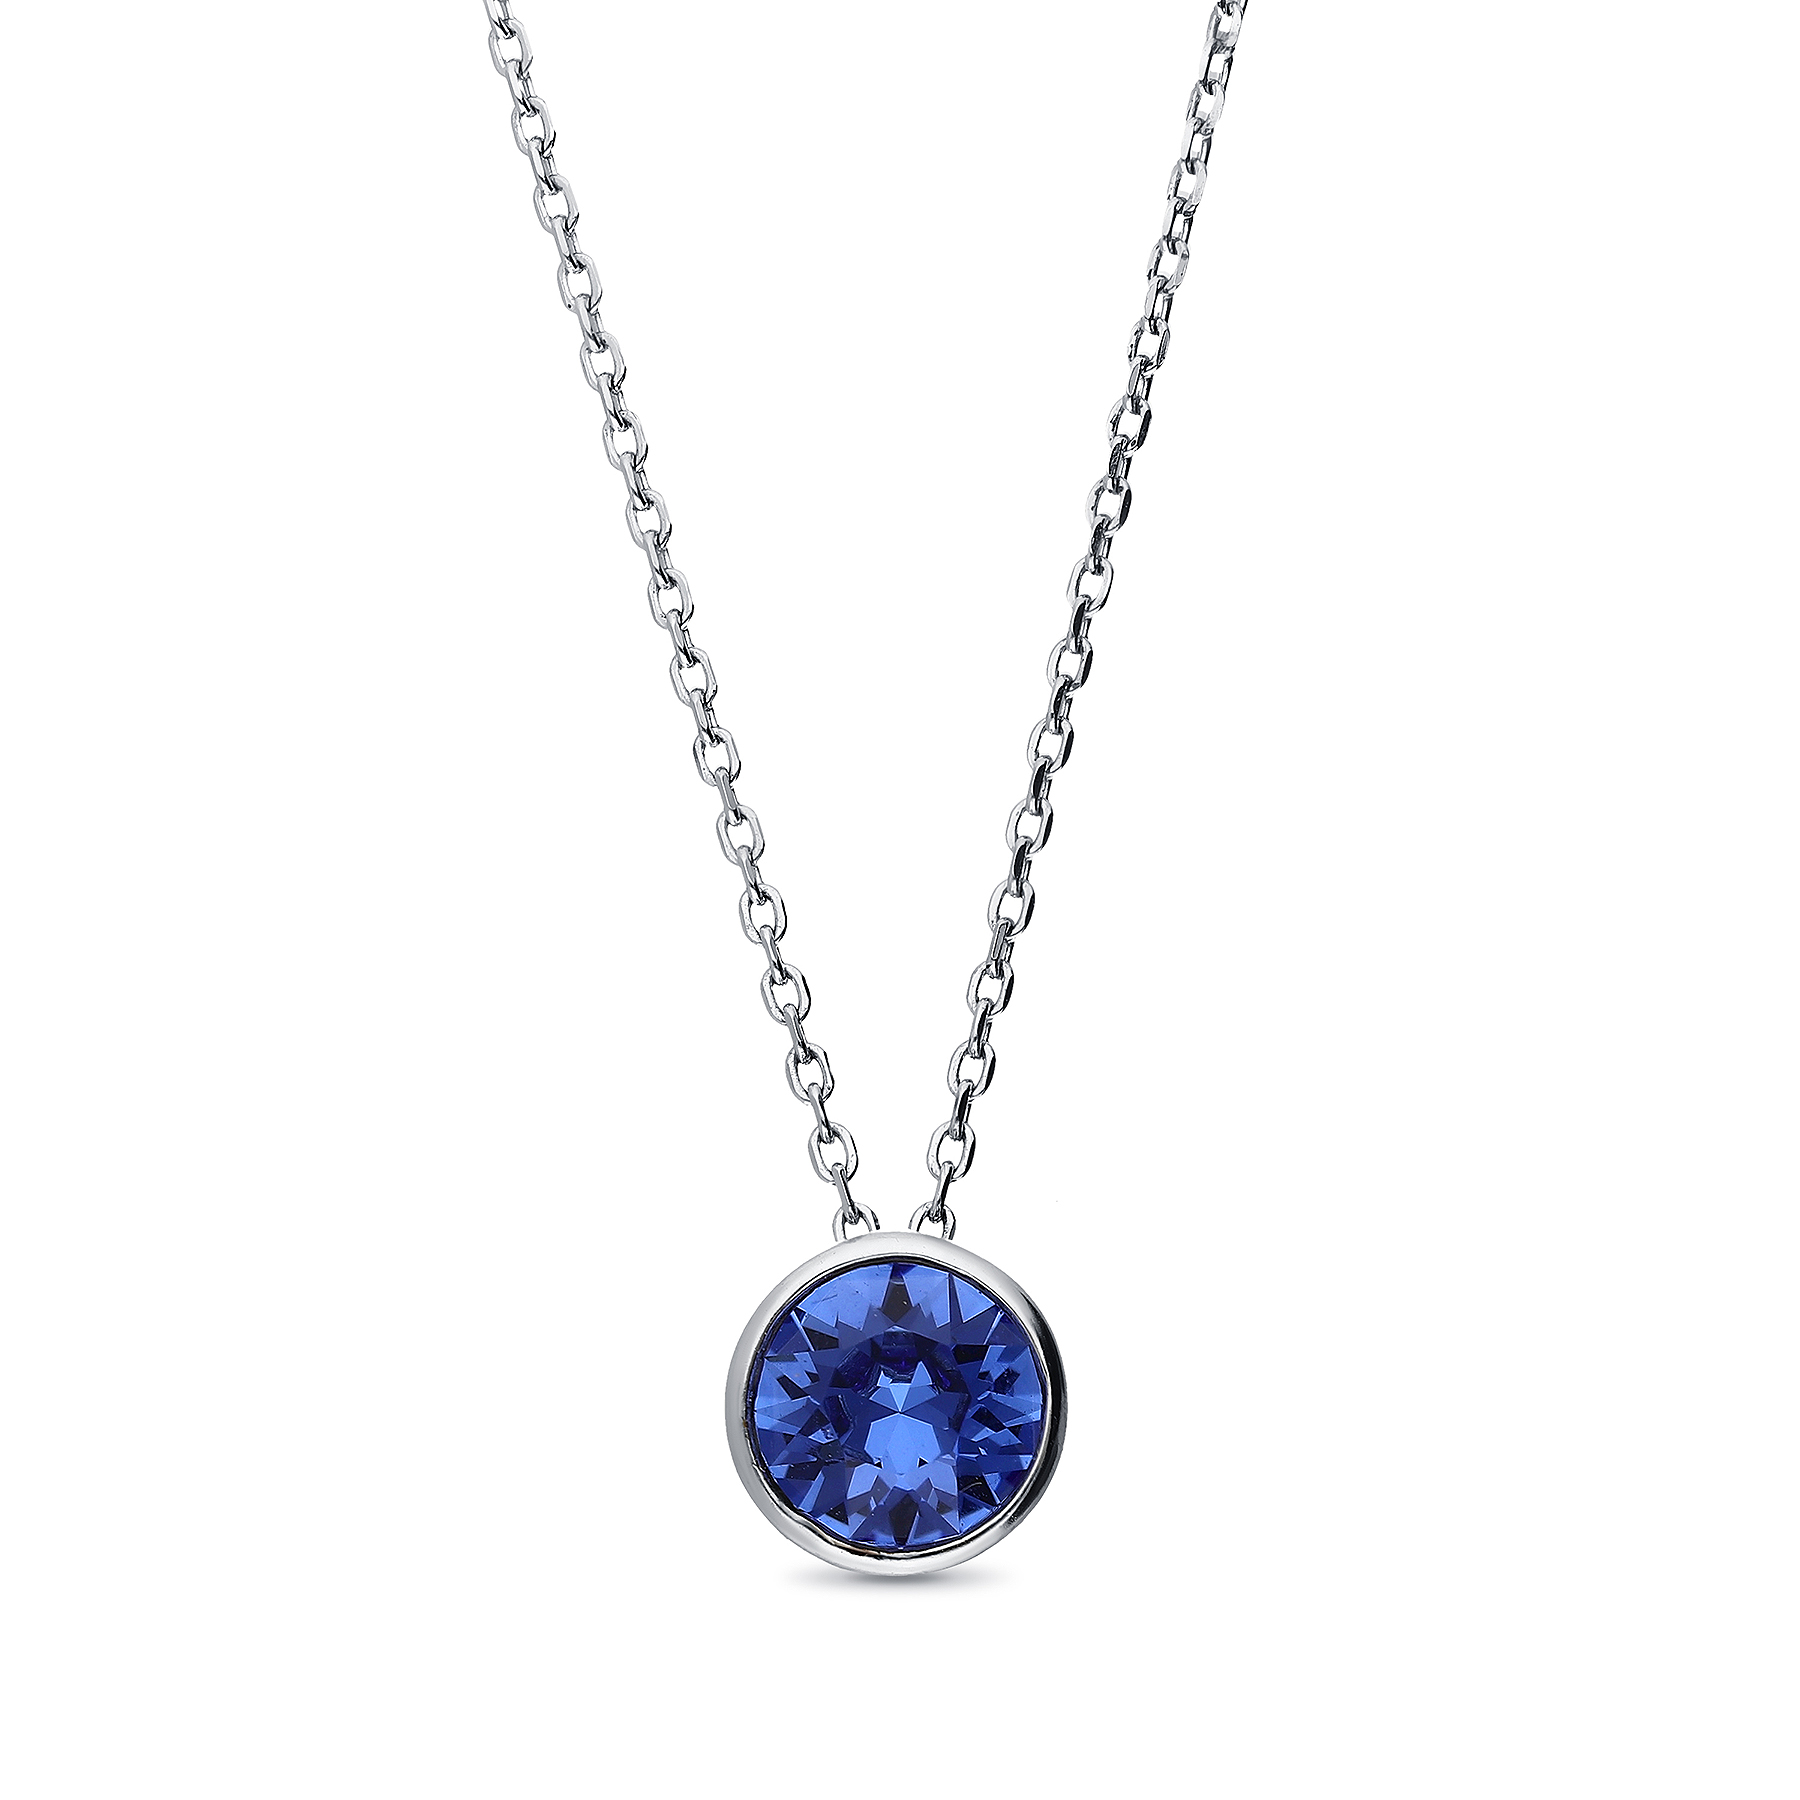 1583-160 - Sparkle by 7K - 925 Sterling Silver Necklace Decorated with Verifiable Authentic Swarovski Crystal